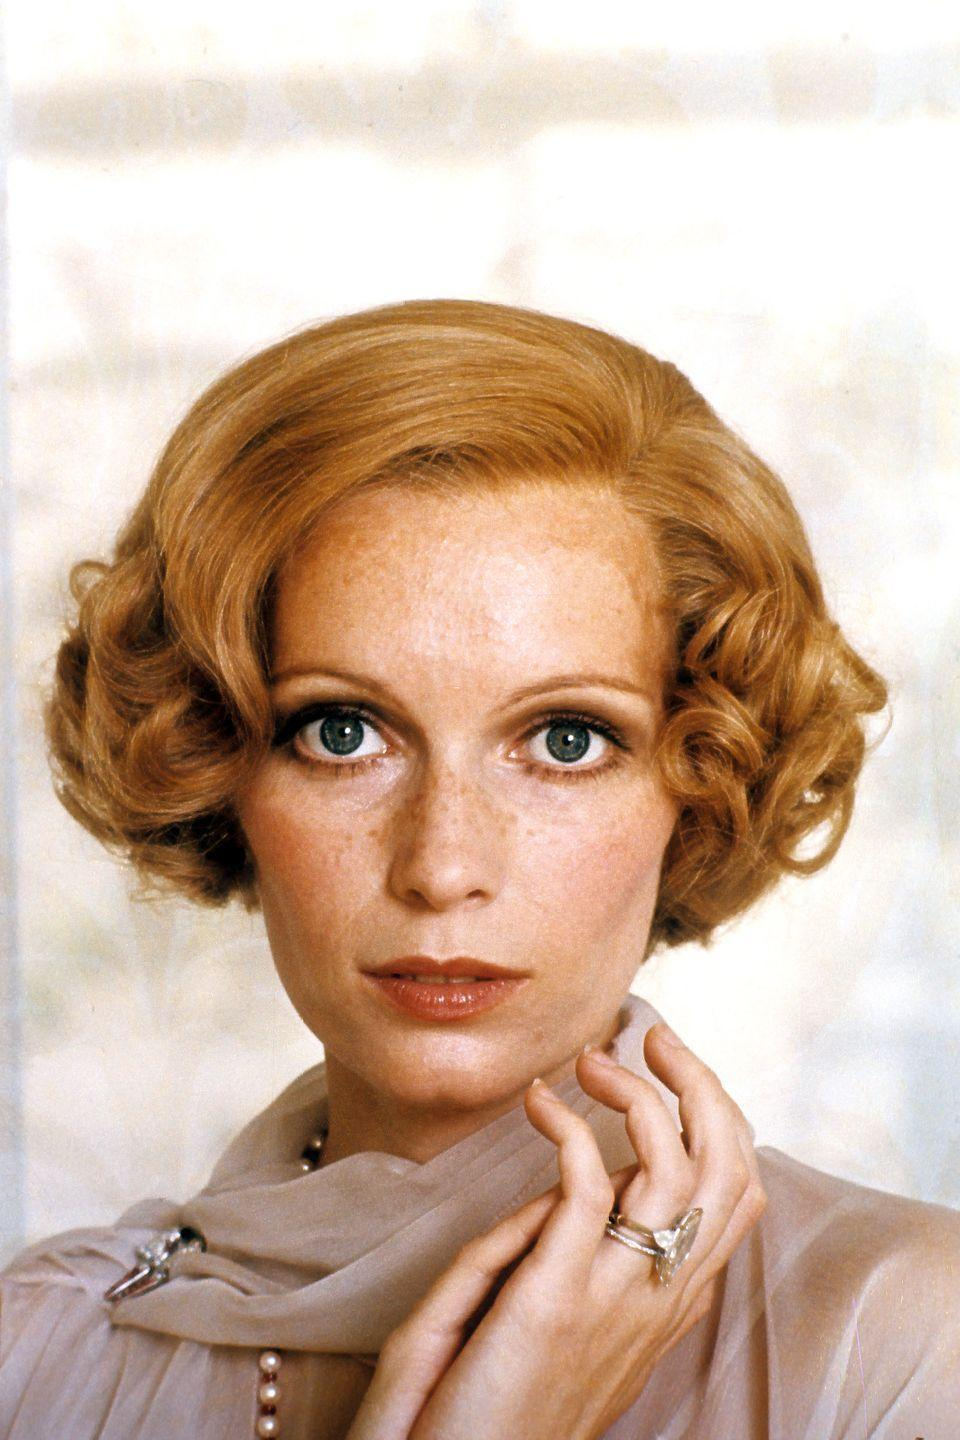 <p>In one of her most well-known roles, Farrow starred alongside Robert Redford in the 1974 film adaptation of <em>The Great Gatsby</em>. The actress grew out her hair to play heiress Daisy Buchanan. </p>